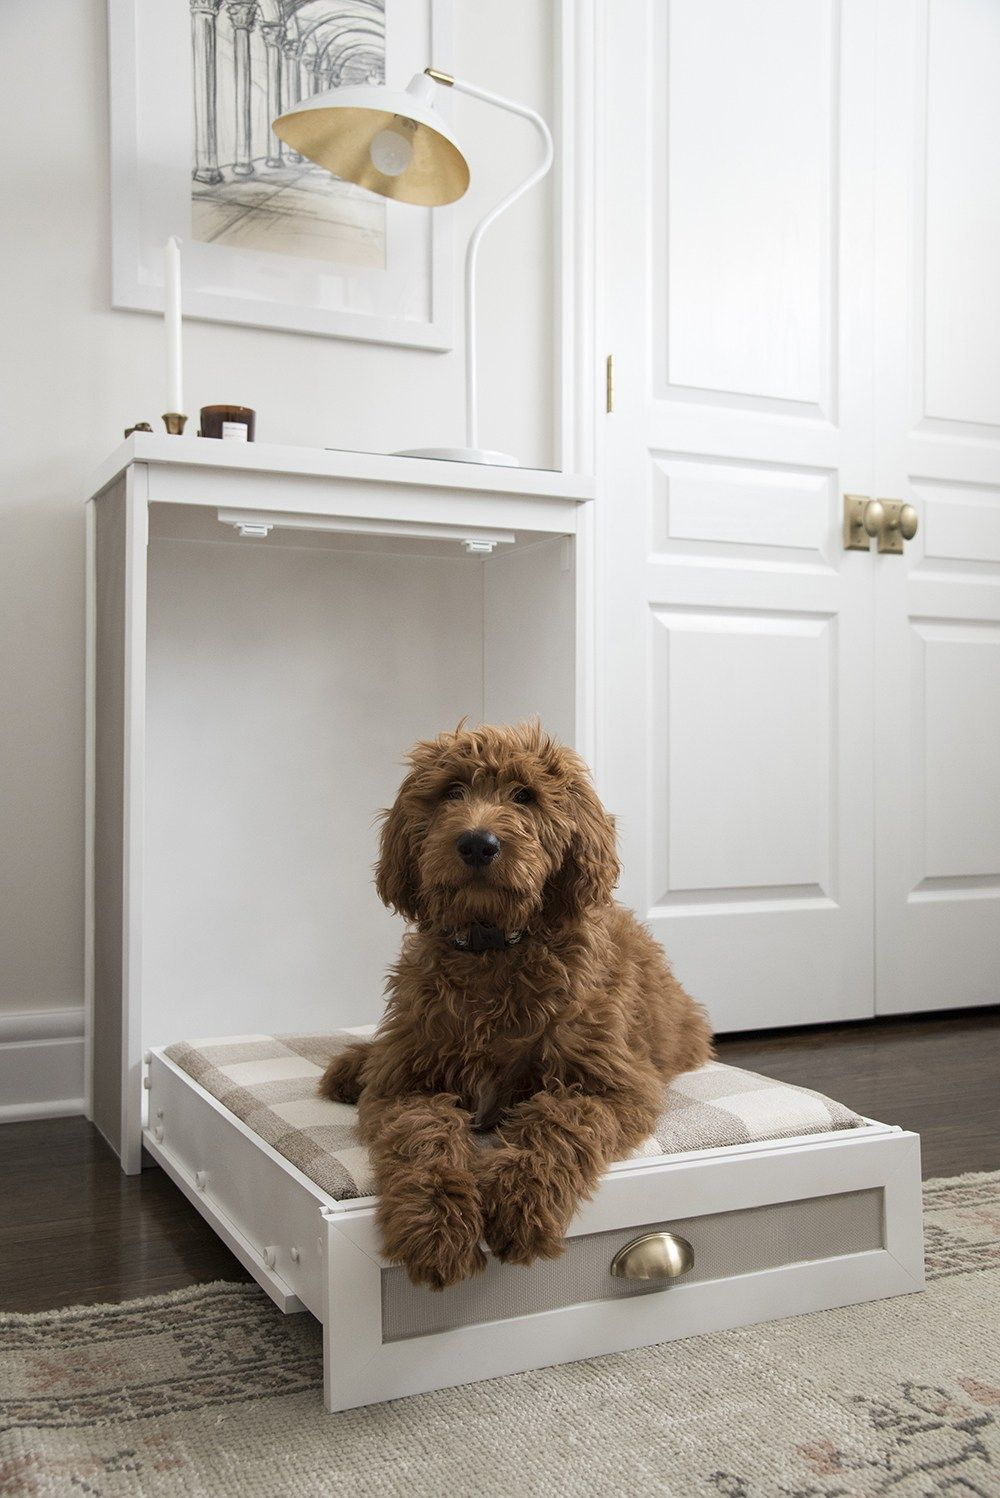 Murphy Dog Bed Diy Roomfortuesday Com In 2020 Murphy Bed Diy Diy Dog Bed Diy Bed